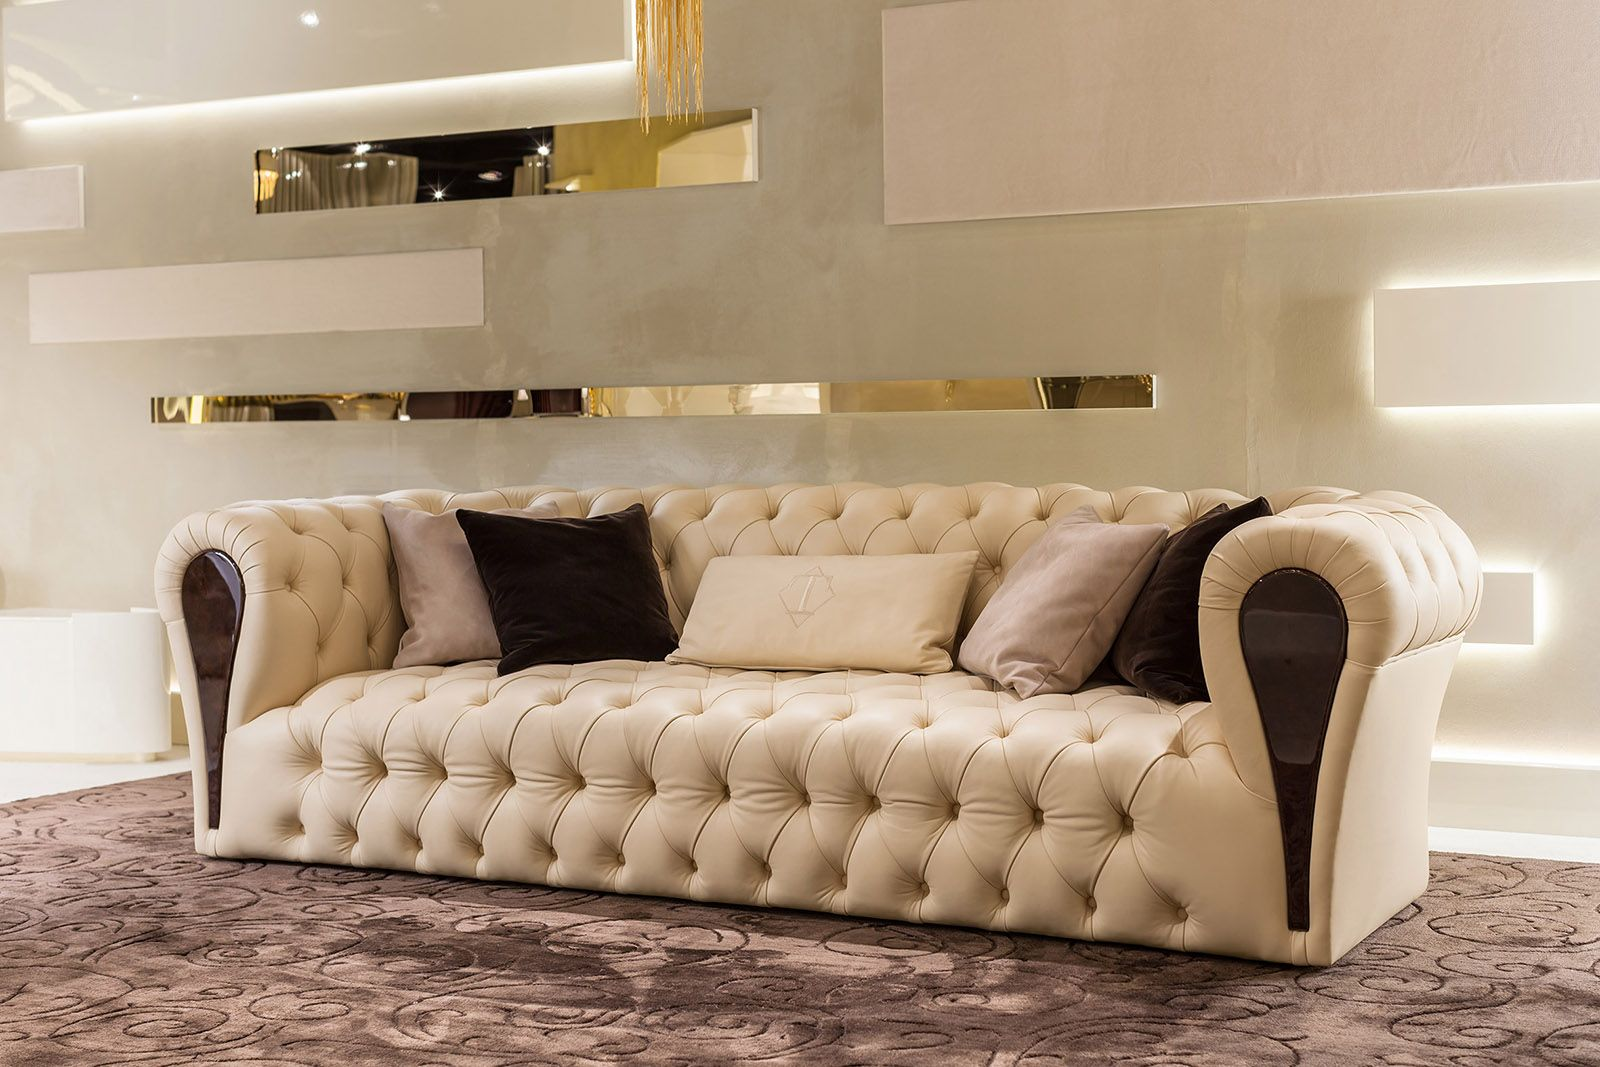 Italian Furniture For Exclusive And Modern Design Luxury Sofa Sofa Design Luxury Furniture